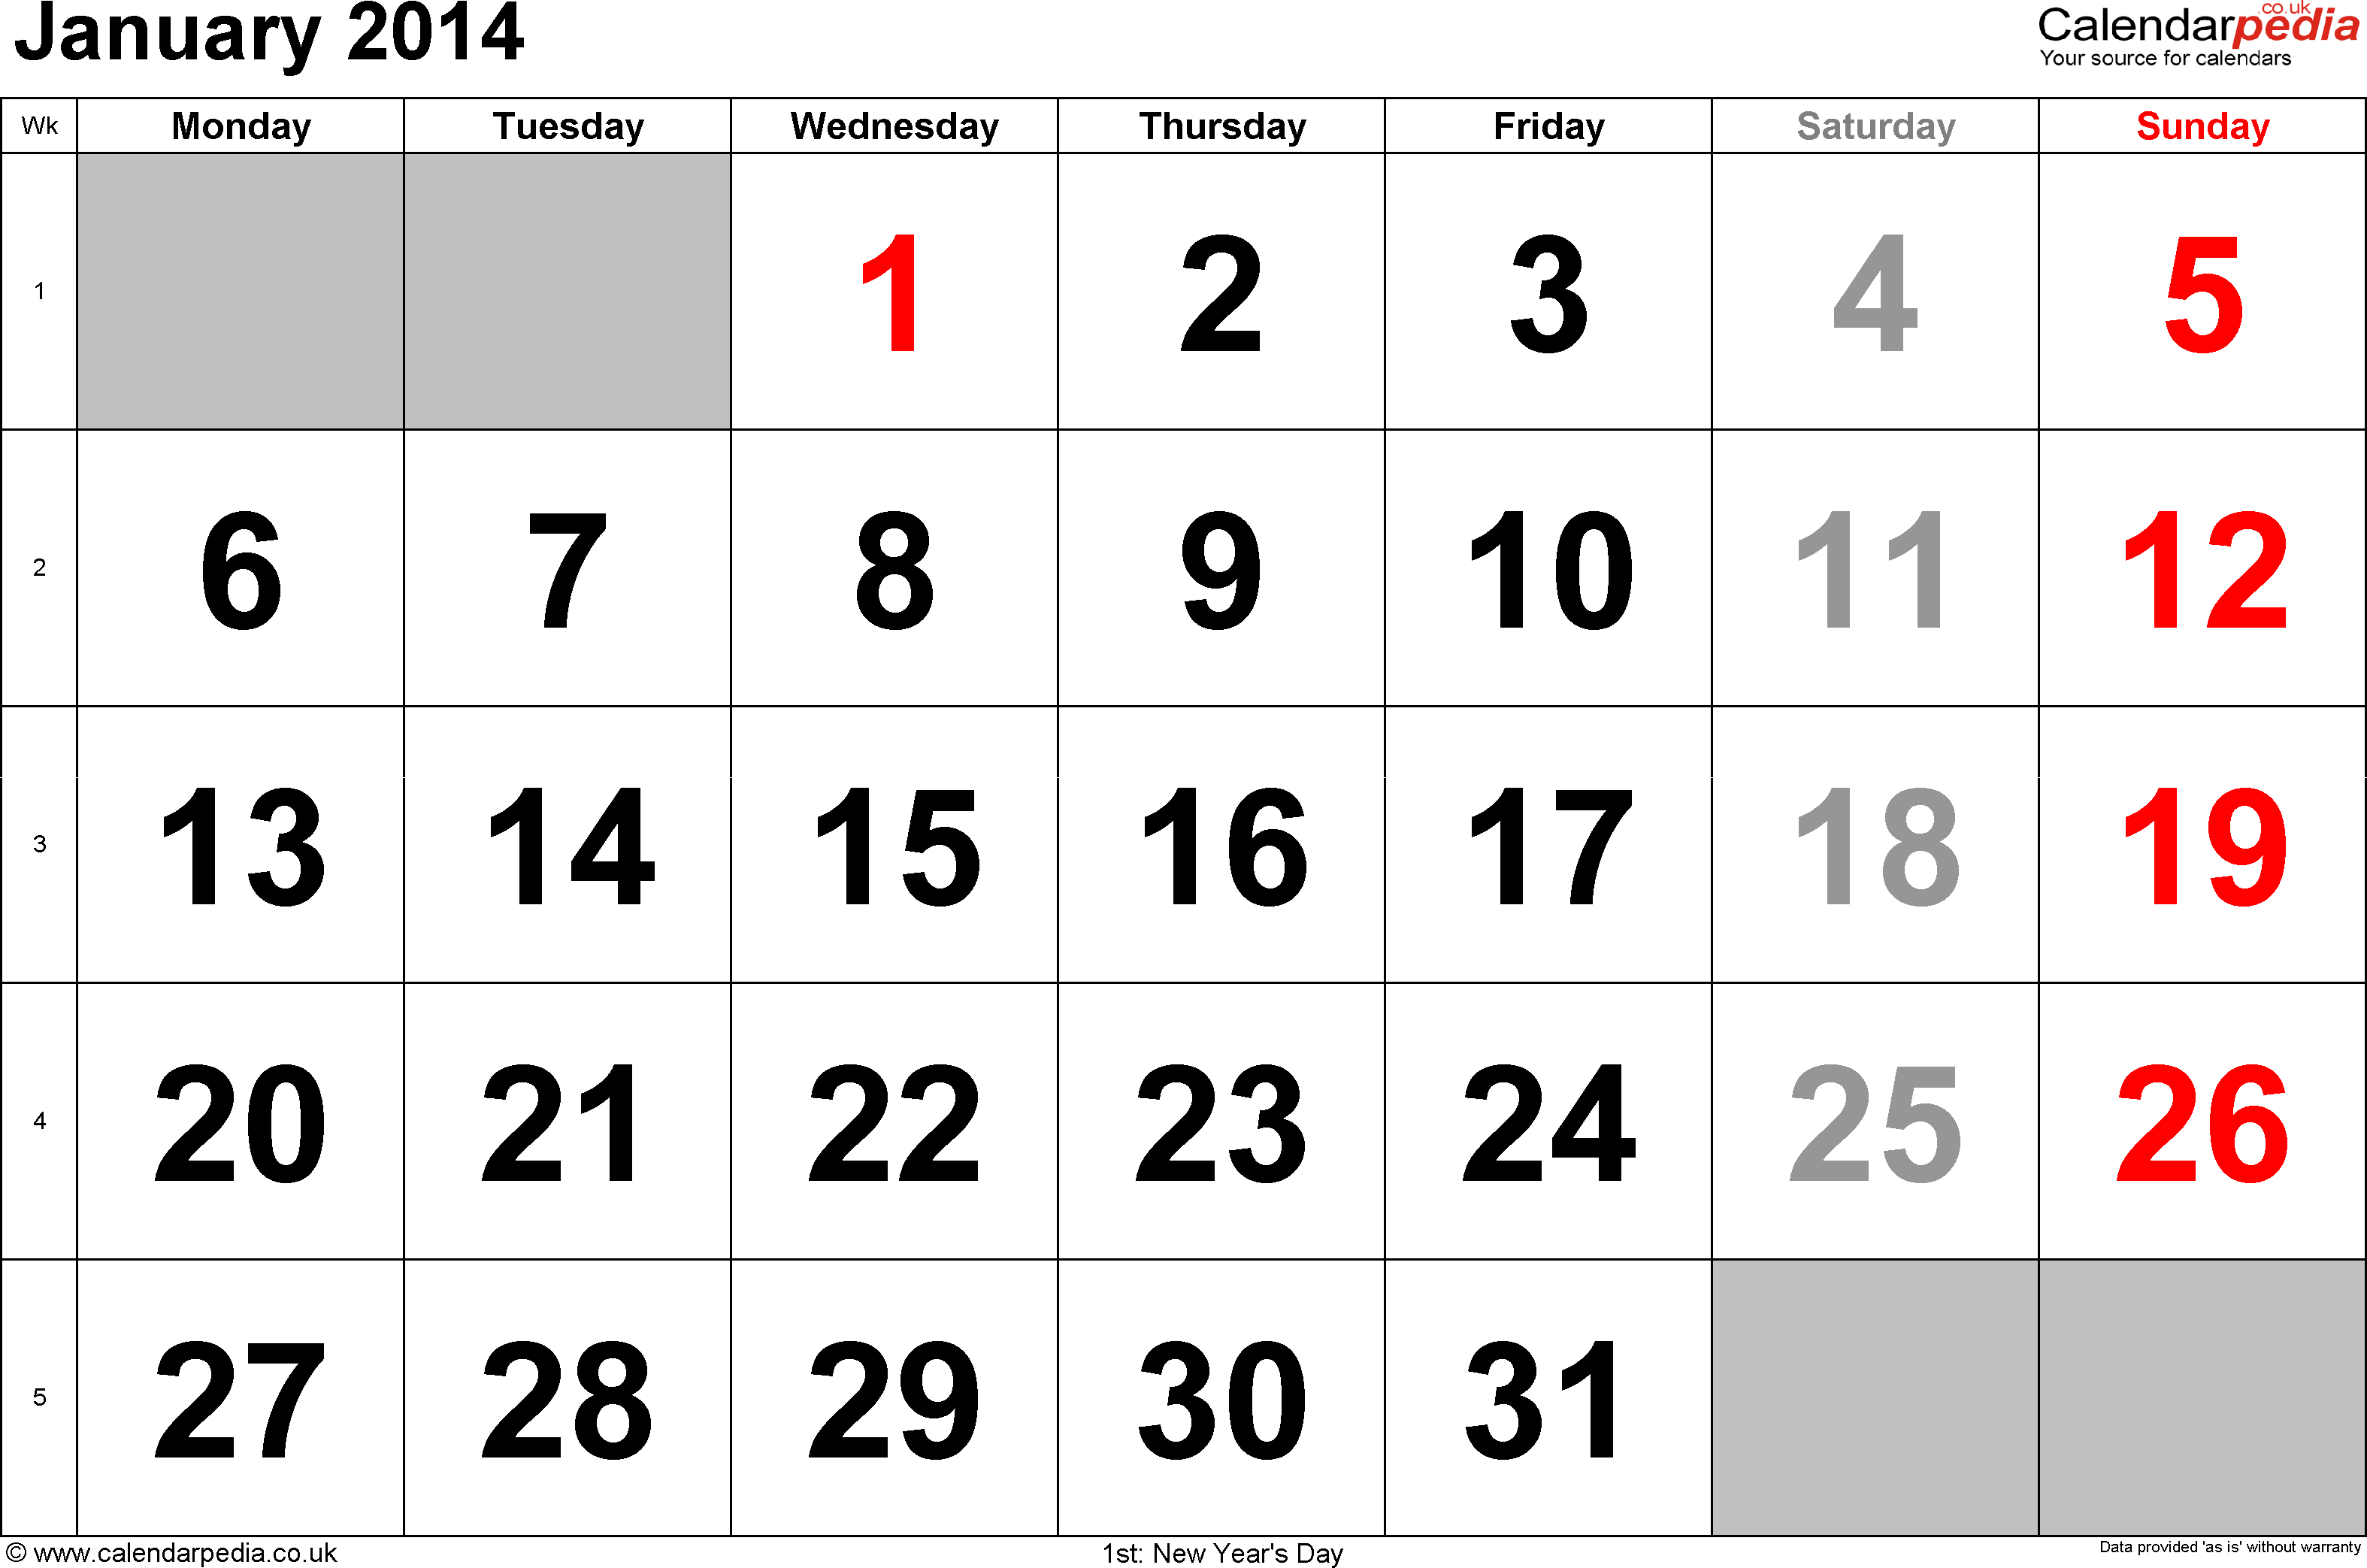 Calendar January 2014, landscape orientation, large numerals, 1 page